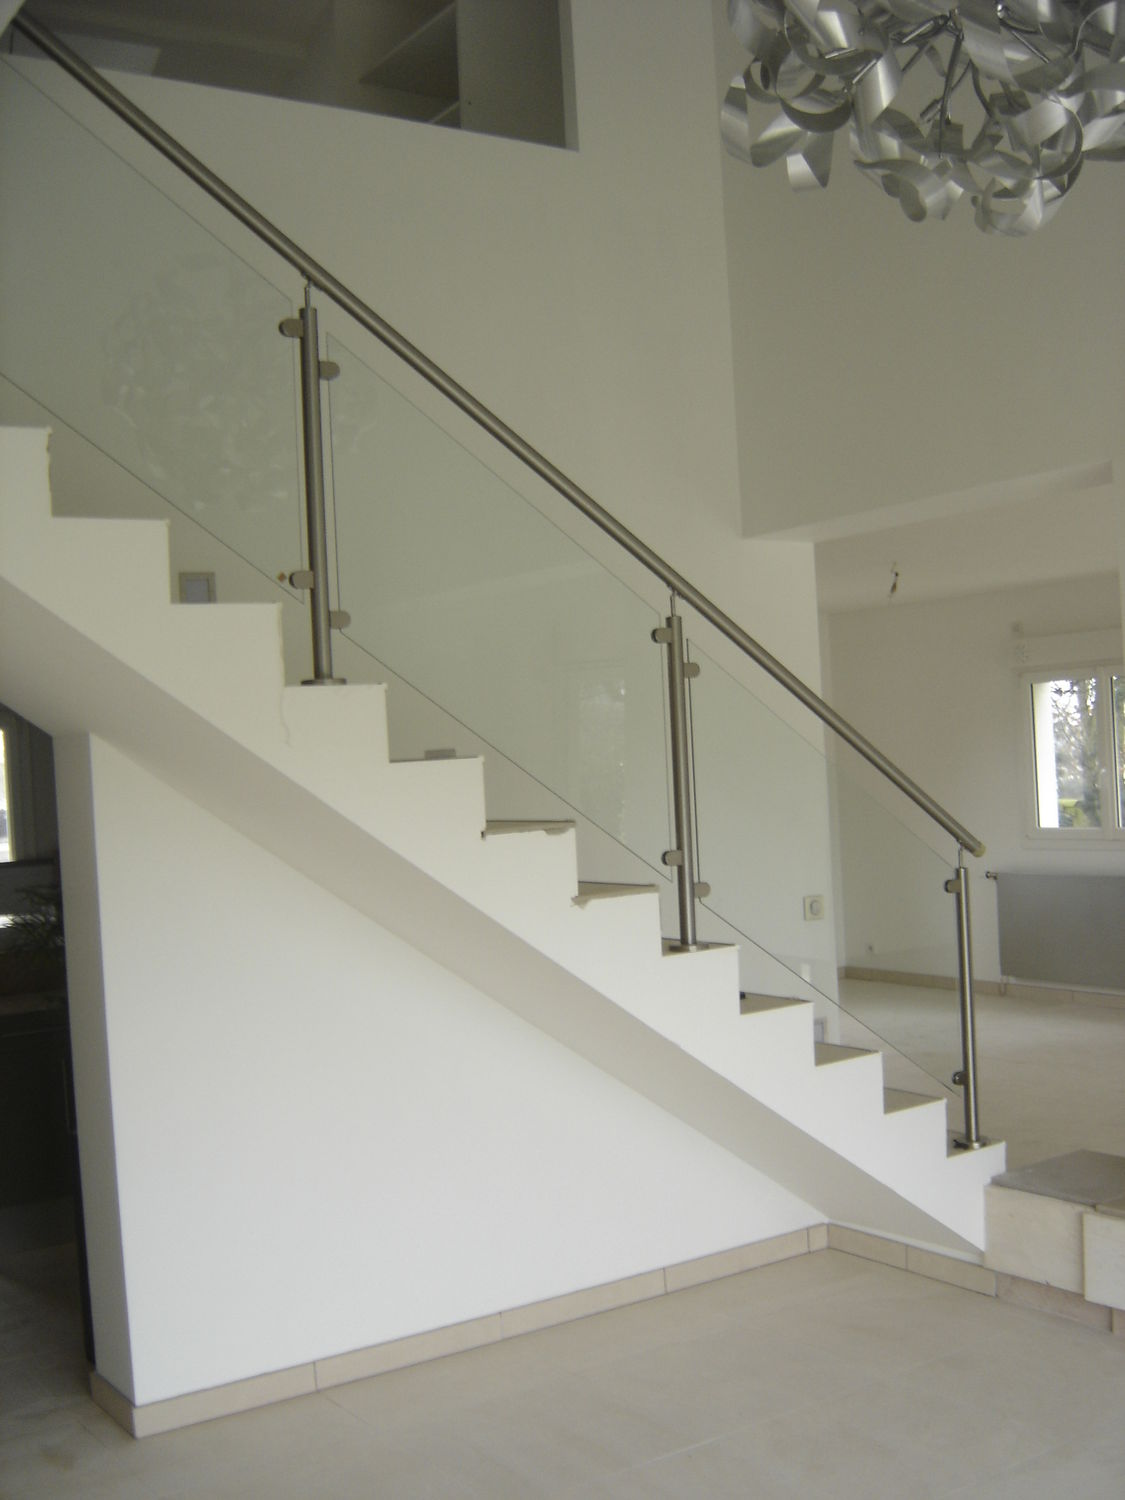 Garde Corps Metal Design stainless steel railing / glass panel / indoor / for stairs